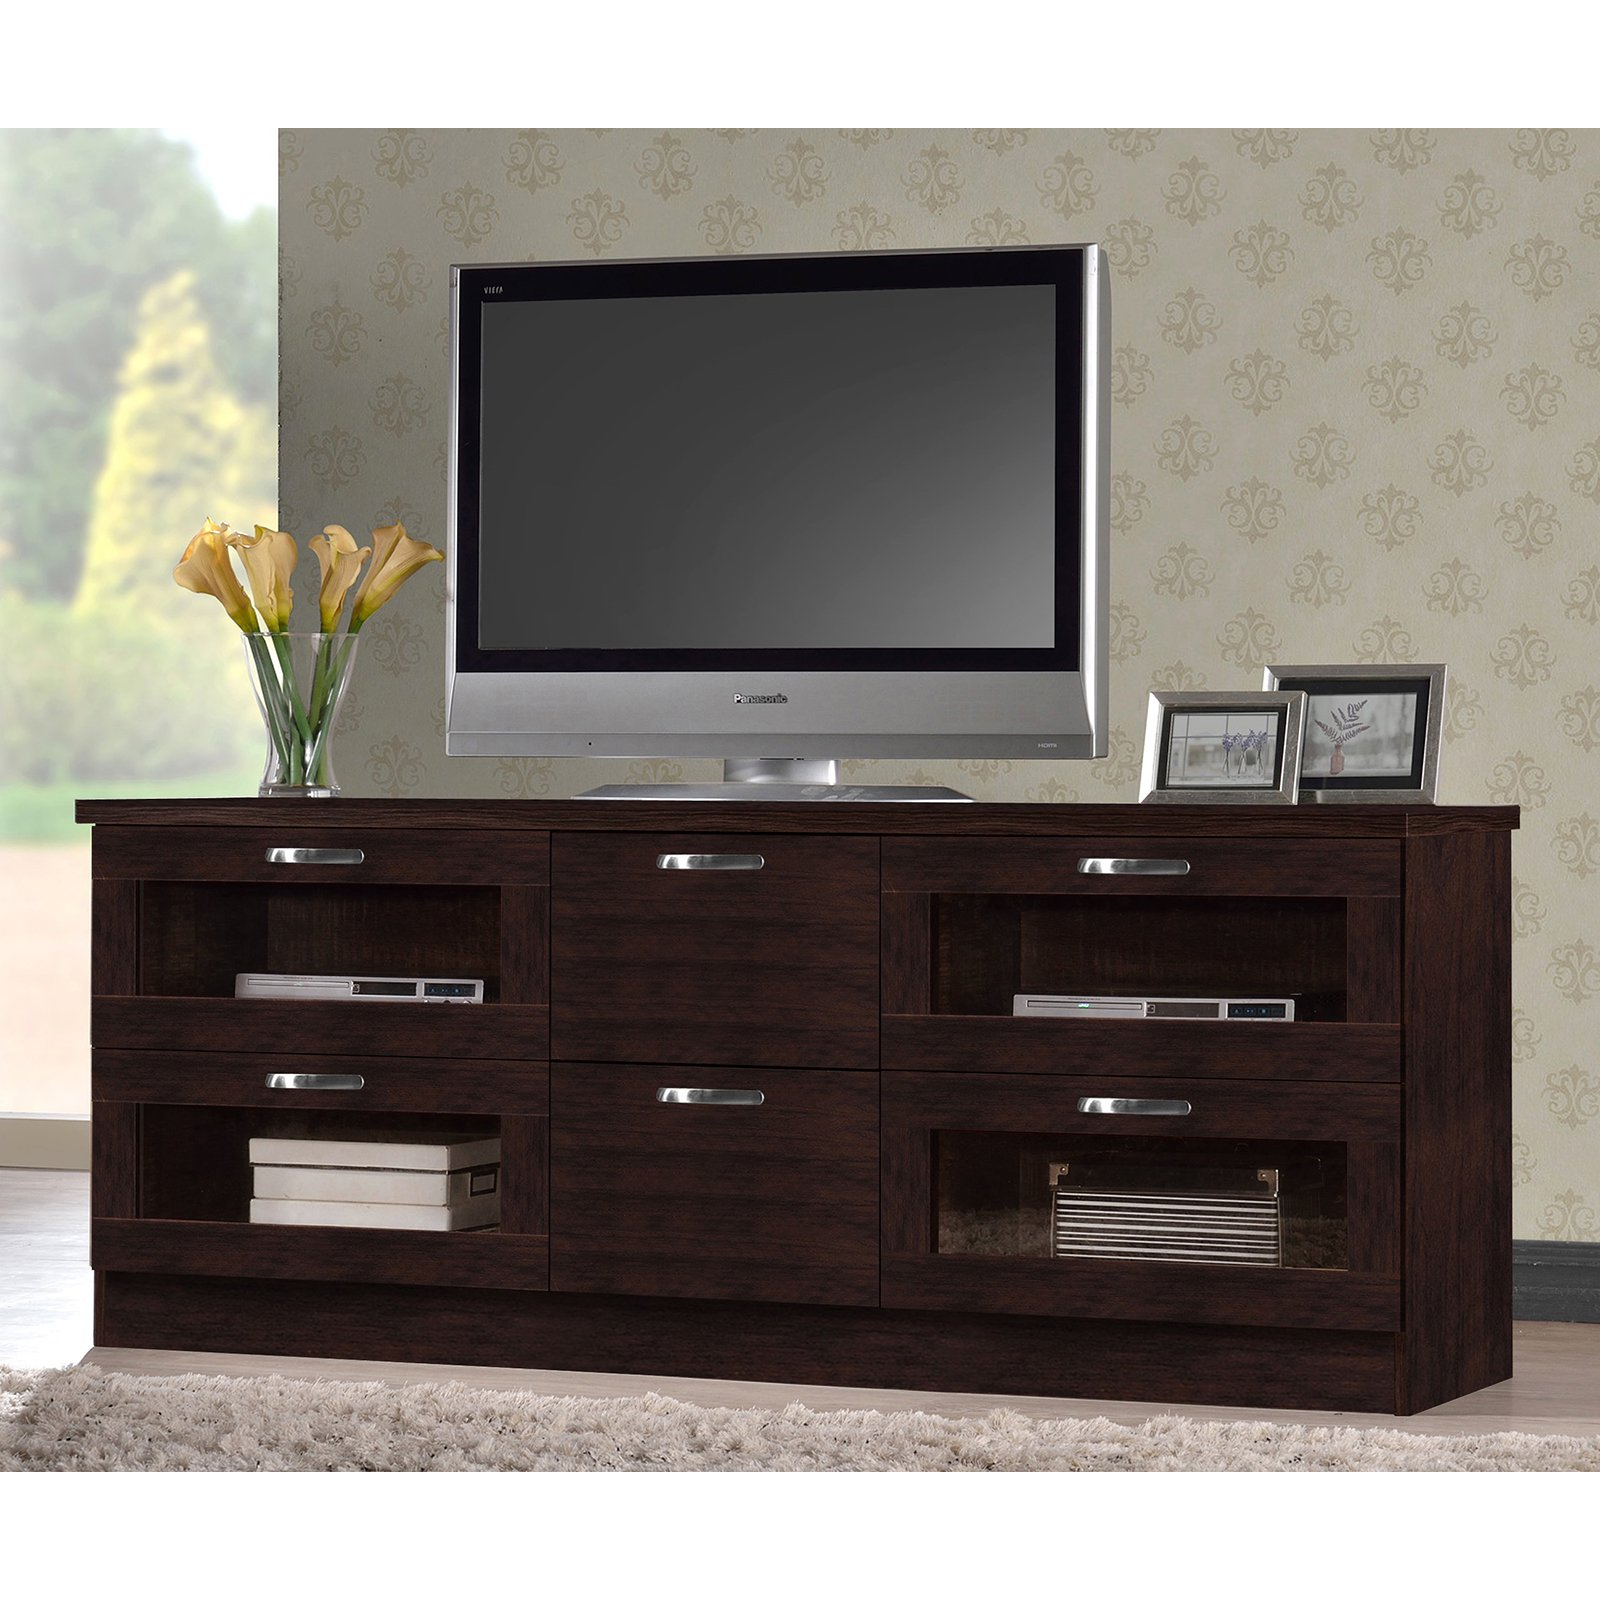 Baxton Studio Adelino 63 Inches Dark Brown Wood Tv Cabinet With 4